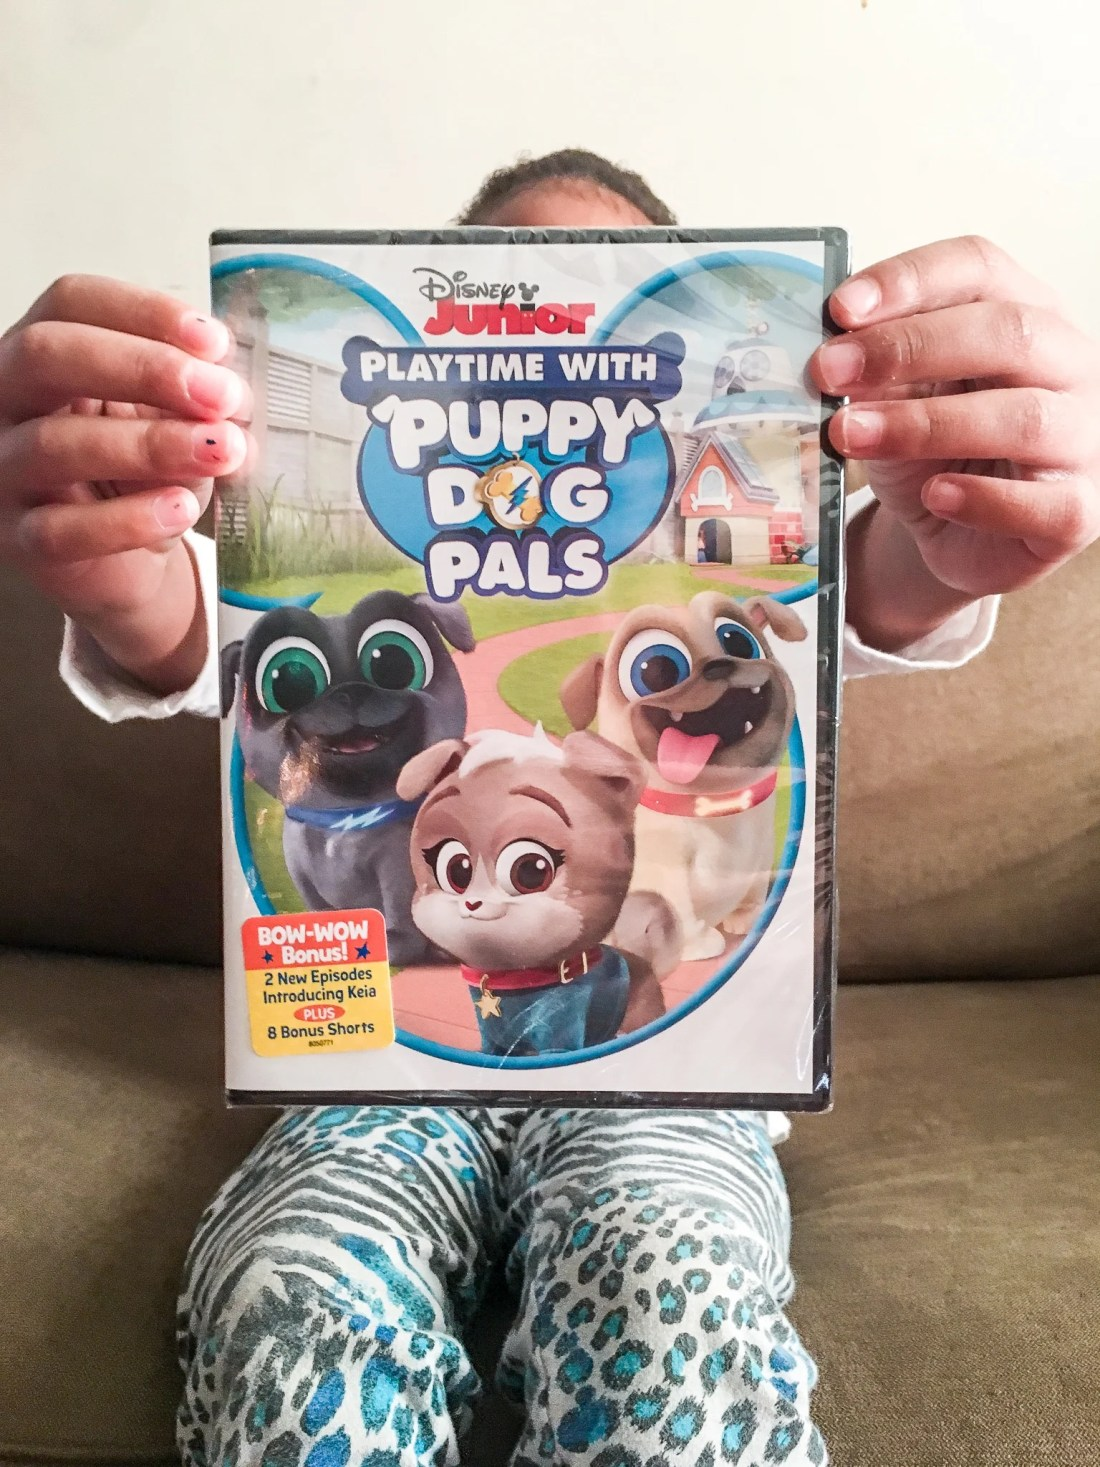 DIsney Junior Playtime With Puppy Dog Plays DVD Girl Holding. Adorable puppy brothers Bingo and Rolly are back! Join the doggy duo on amazing missions in their newest Playtime with Puppy Dog Pals DVD.